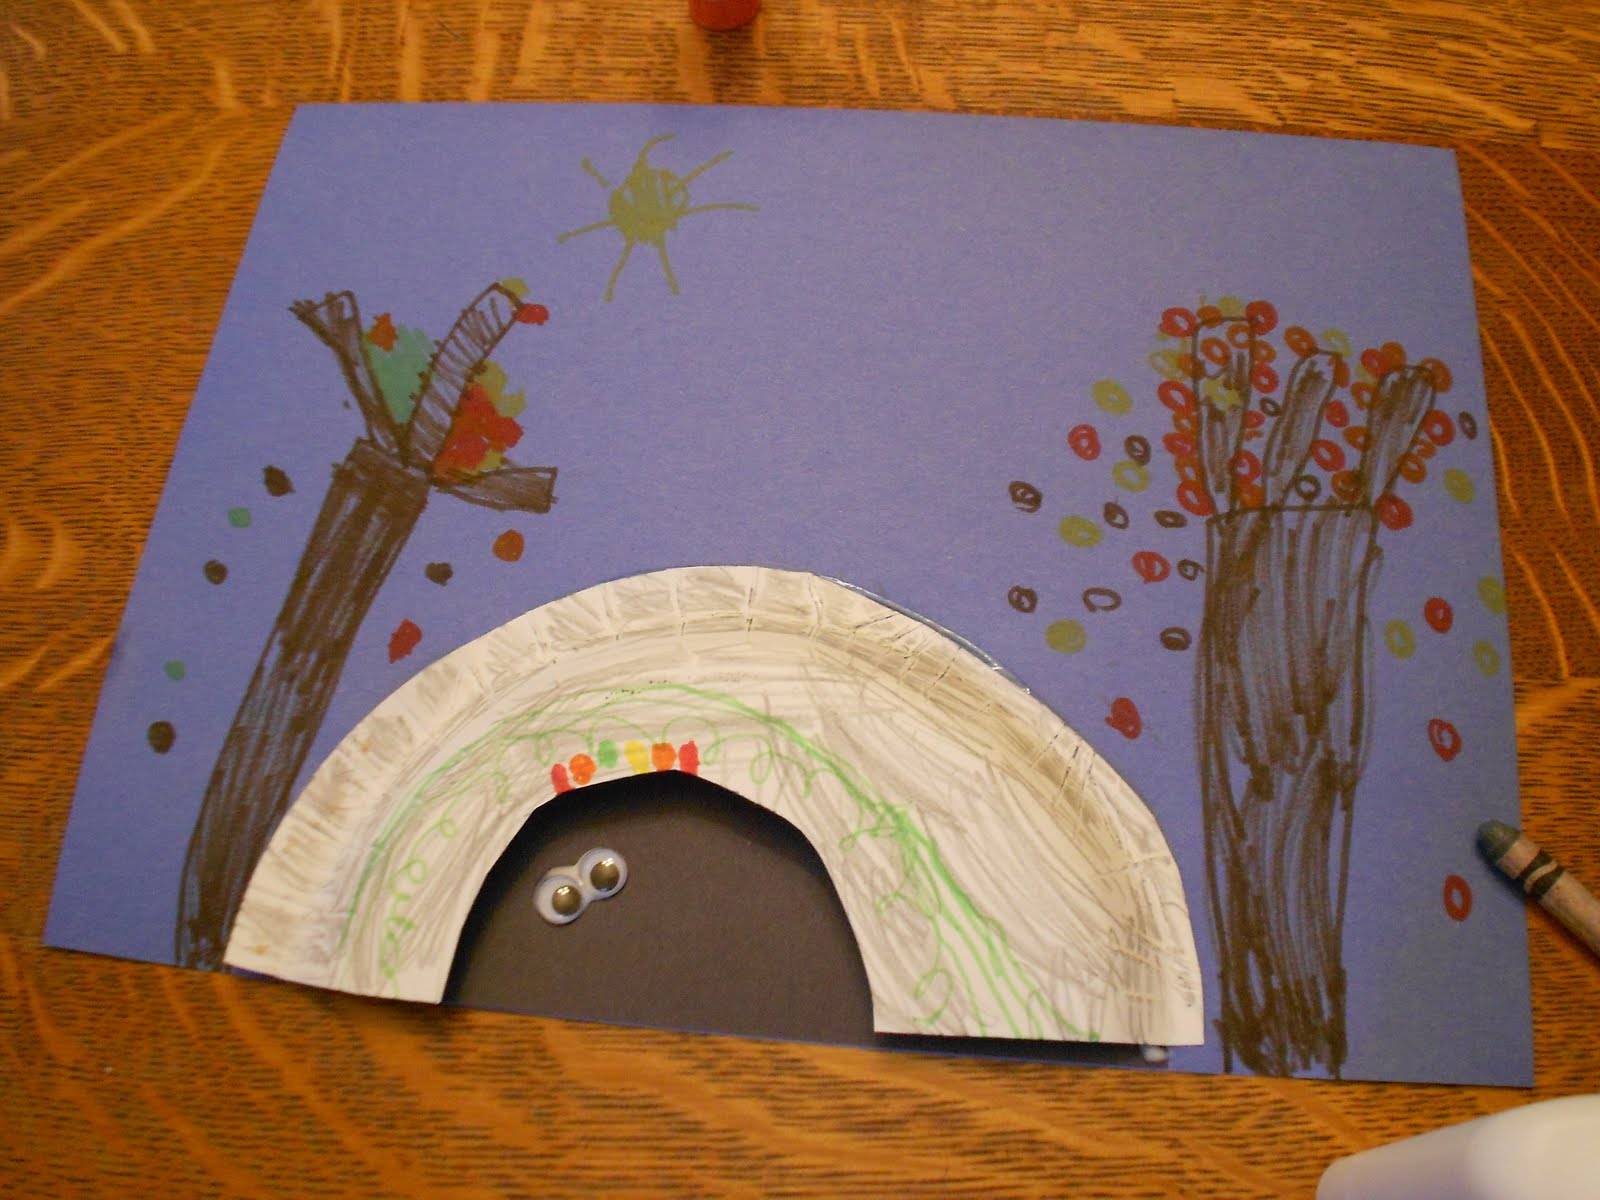 & Almost Unschoolers: The Bears Are Still Awake - Hibernation Craft